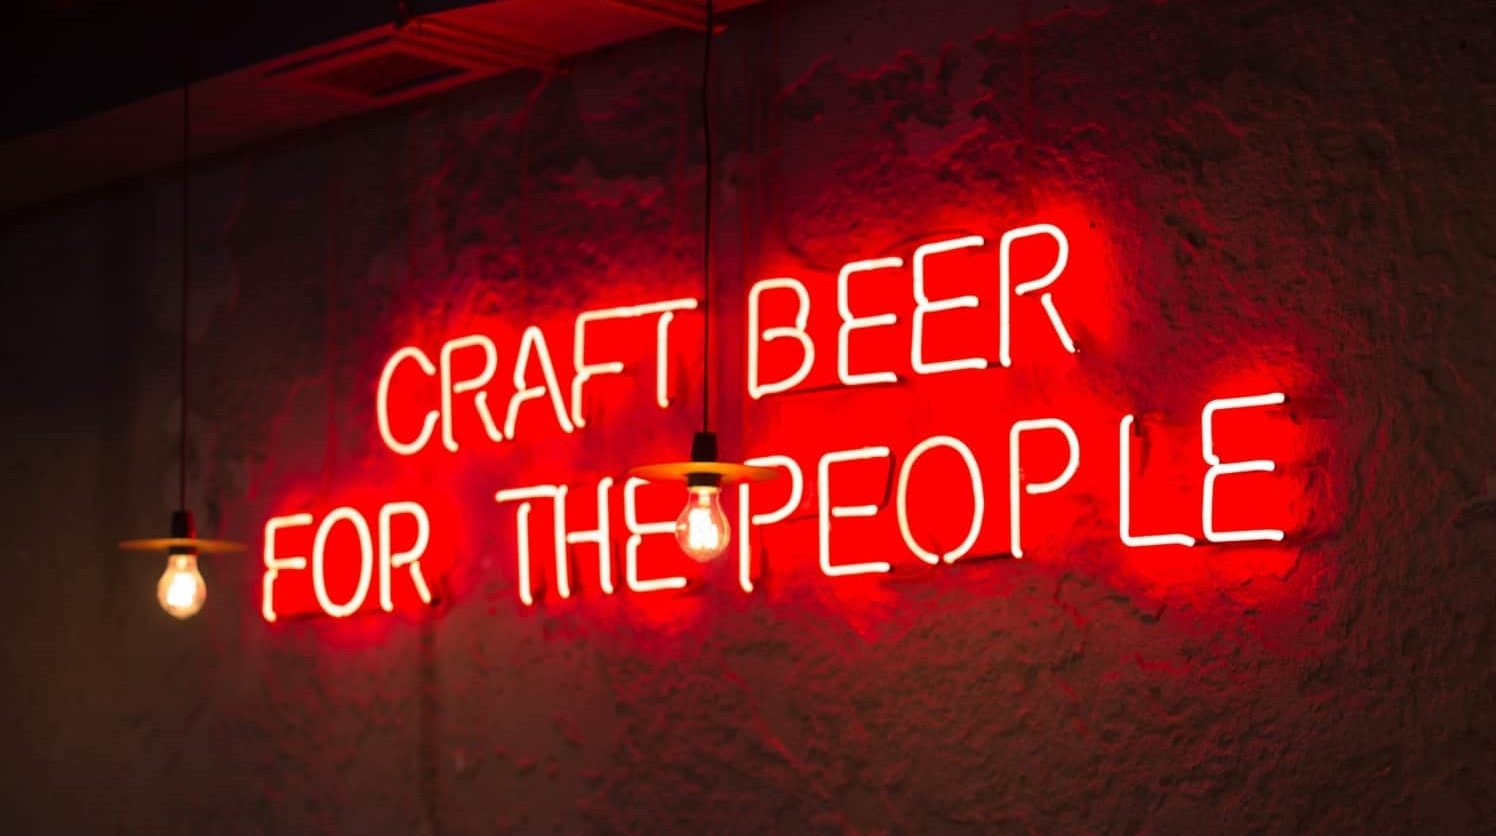 Neonschriftzug craft beer for the people